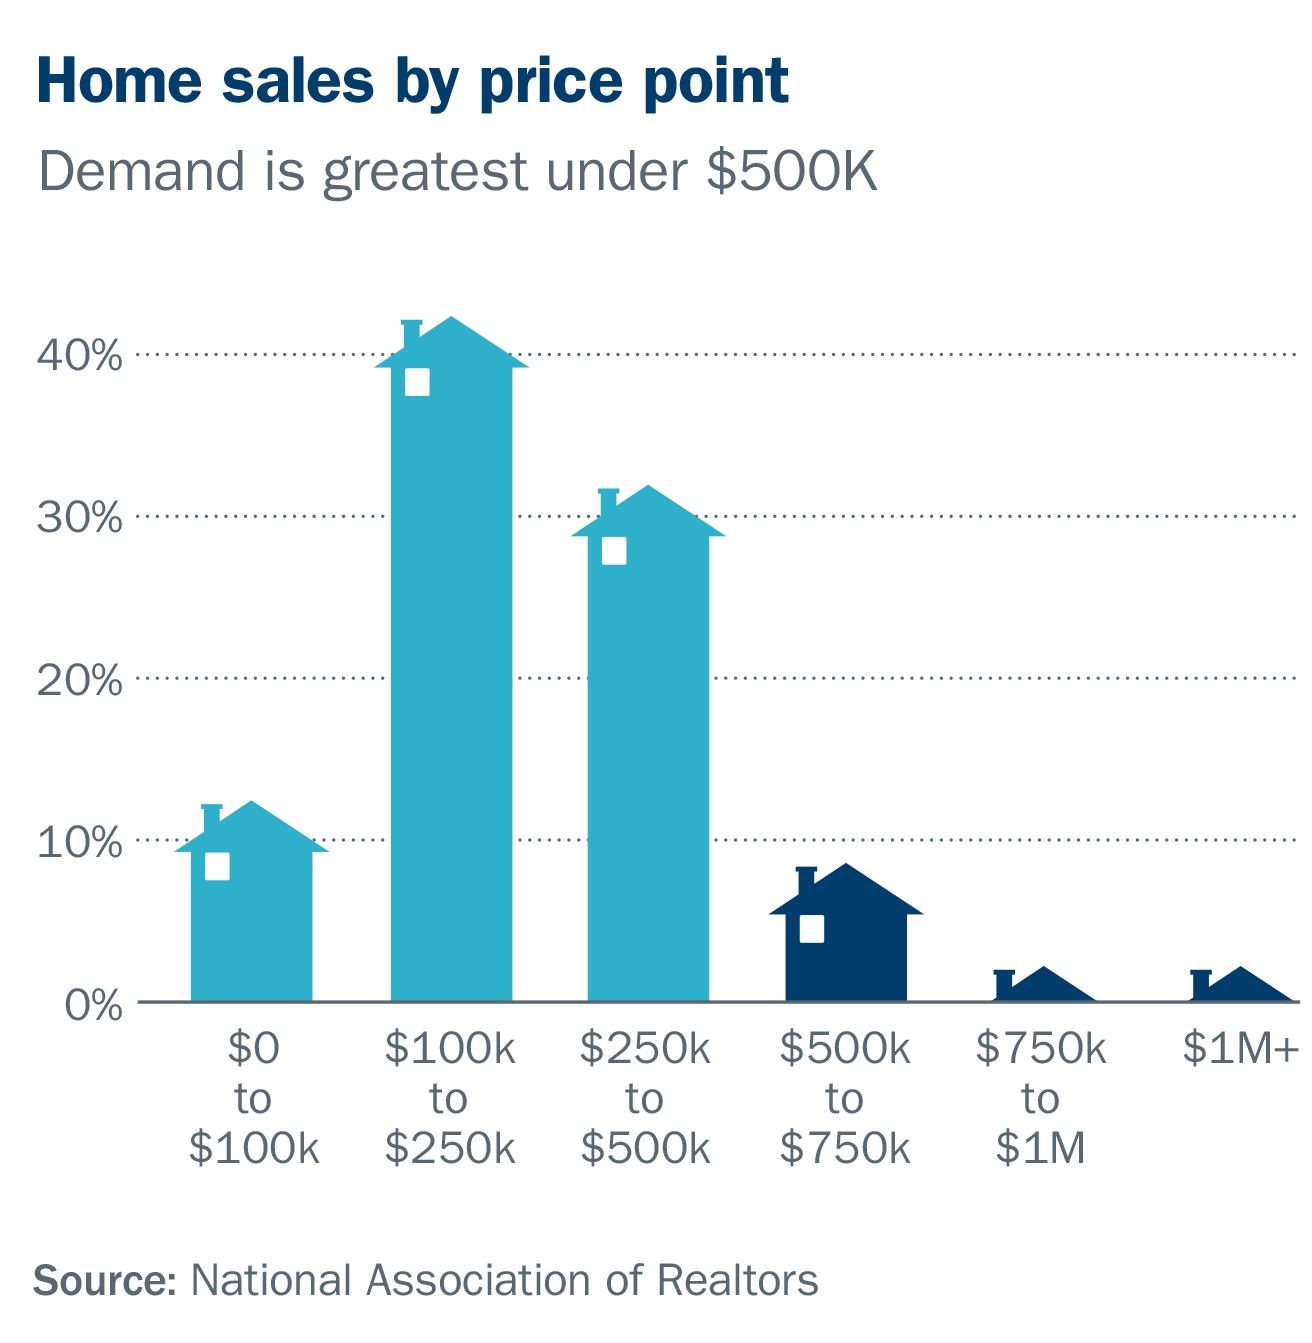 Home sales by price point